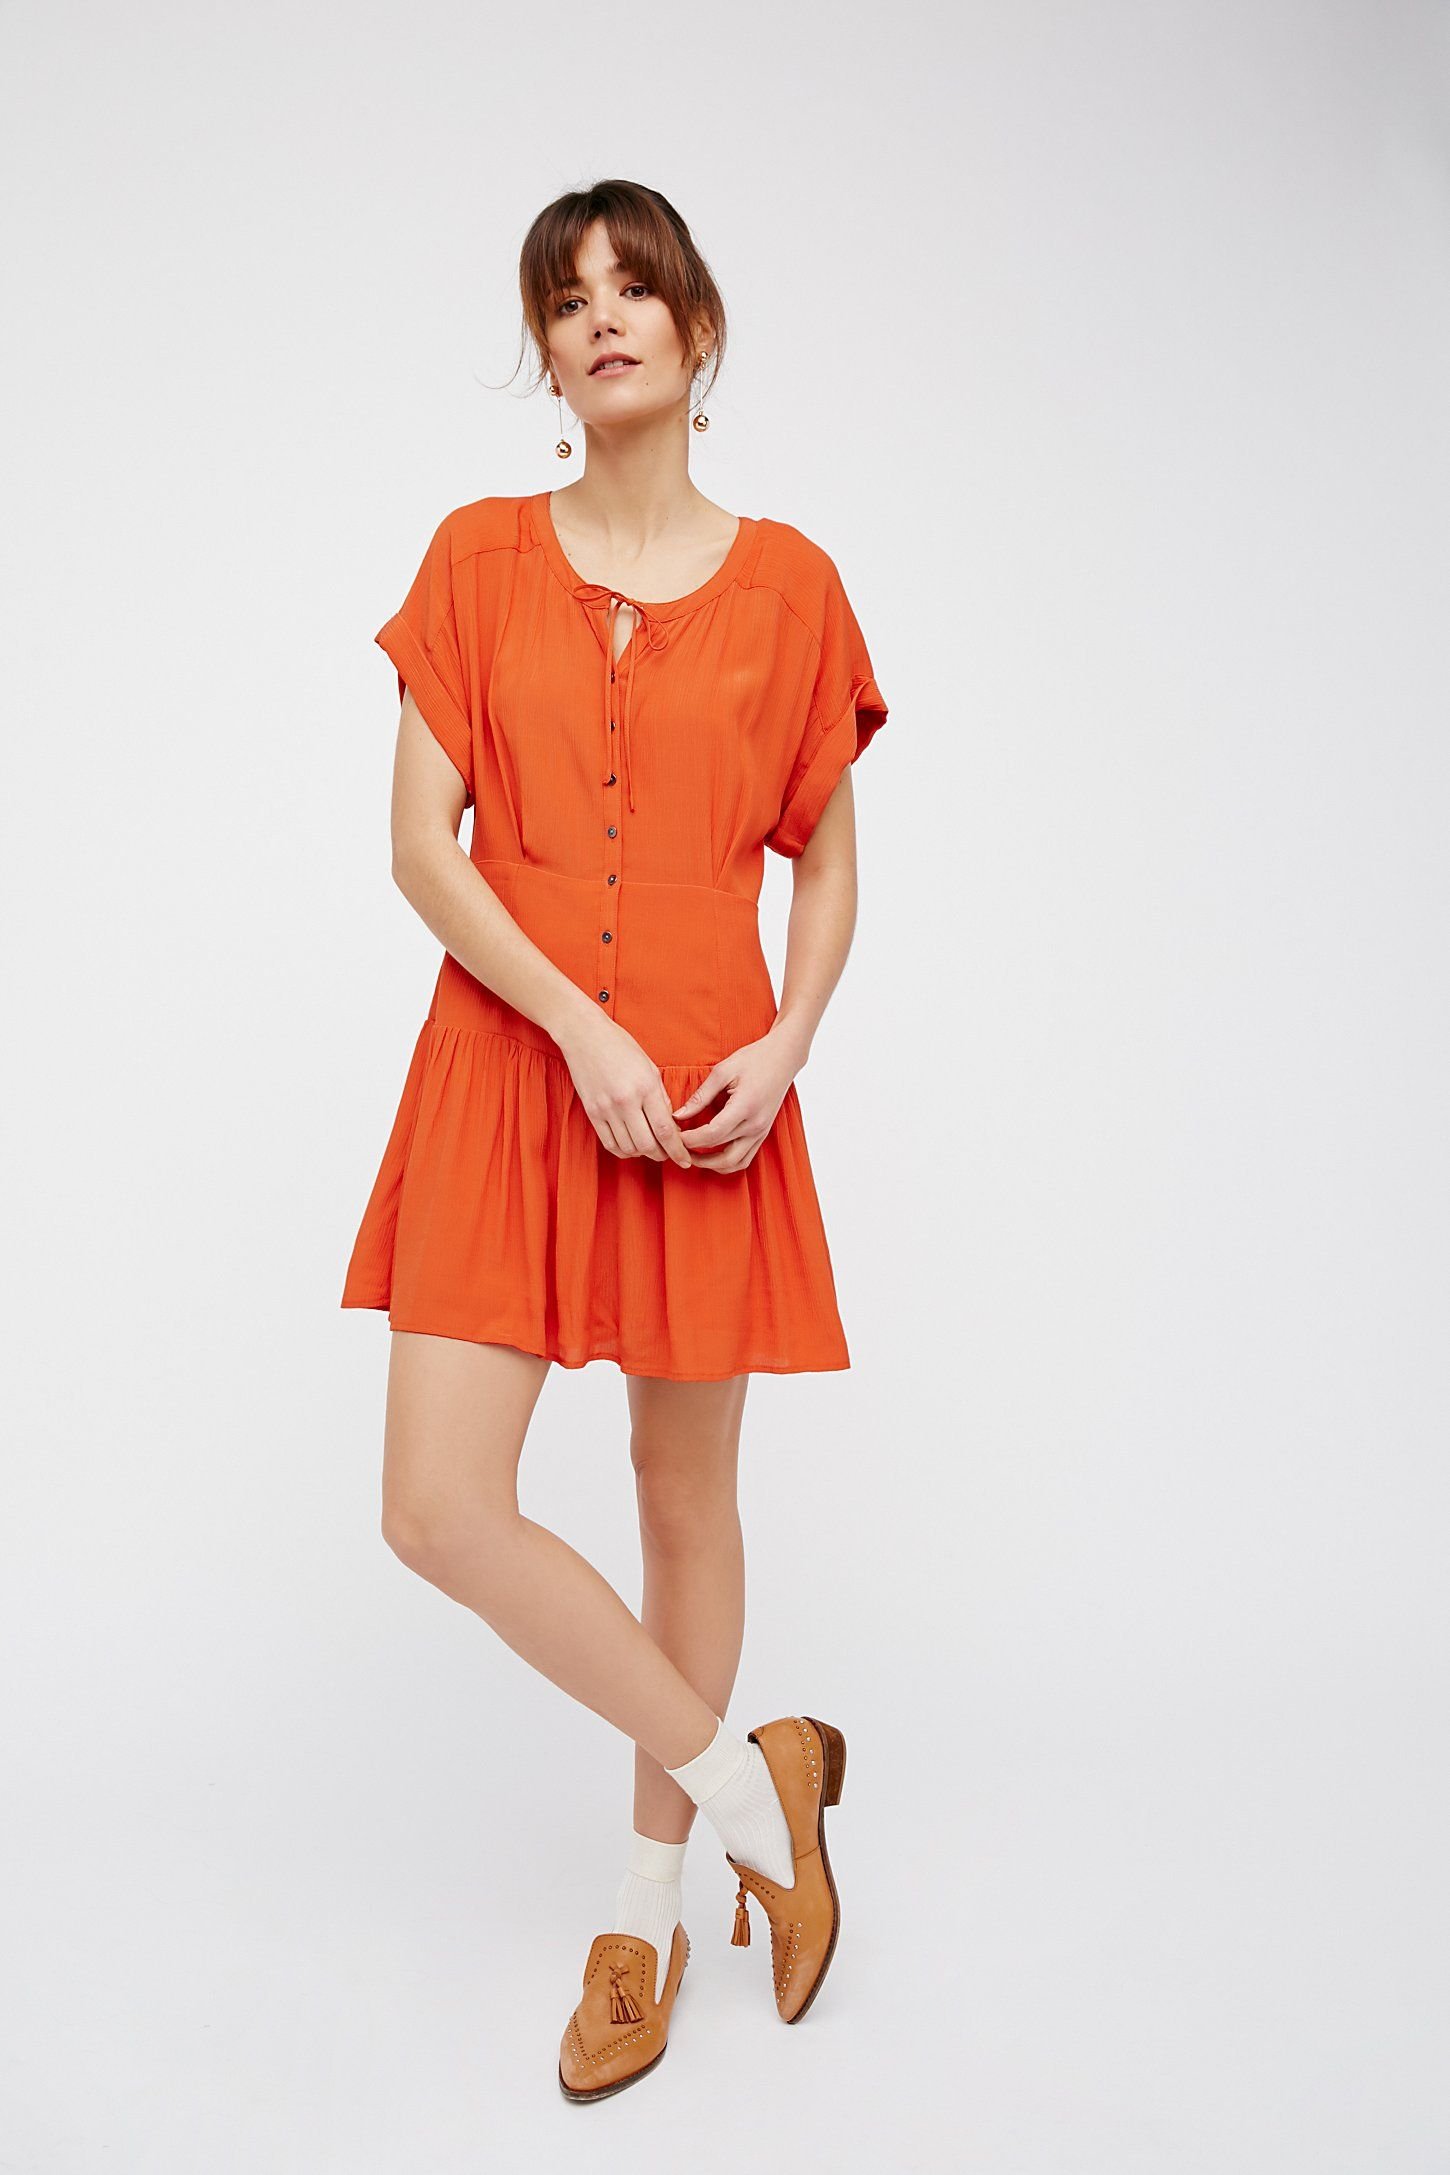 Shop our tait shirt dress at free people share style pics with